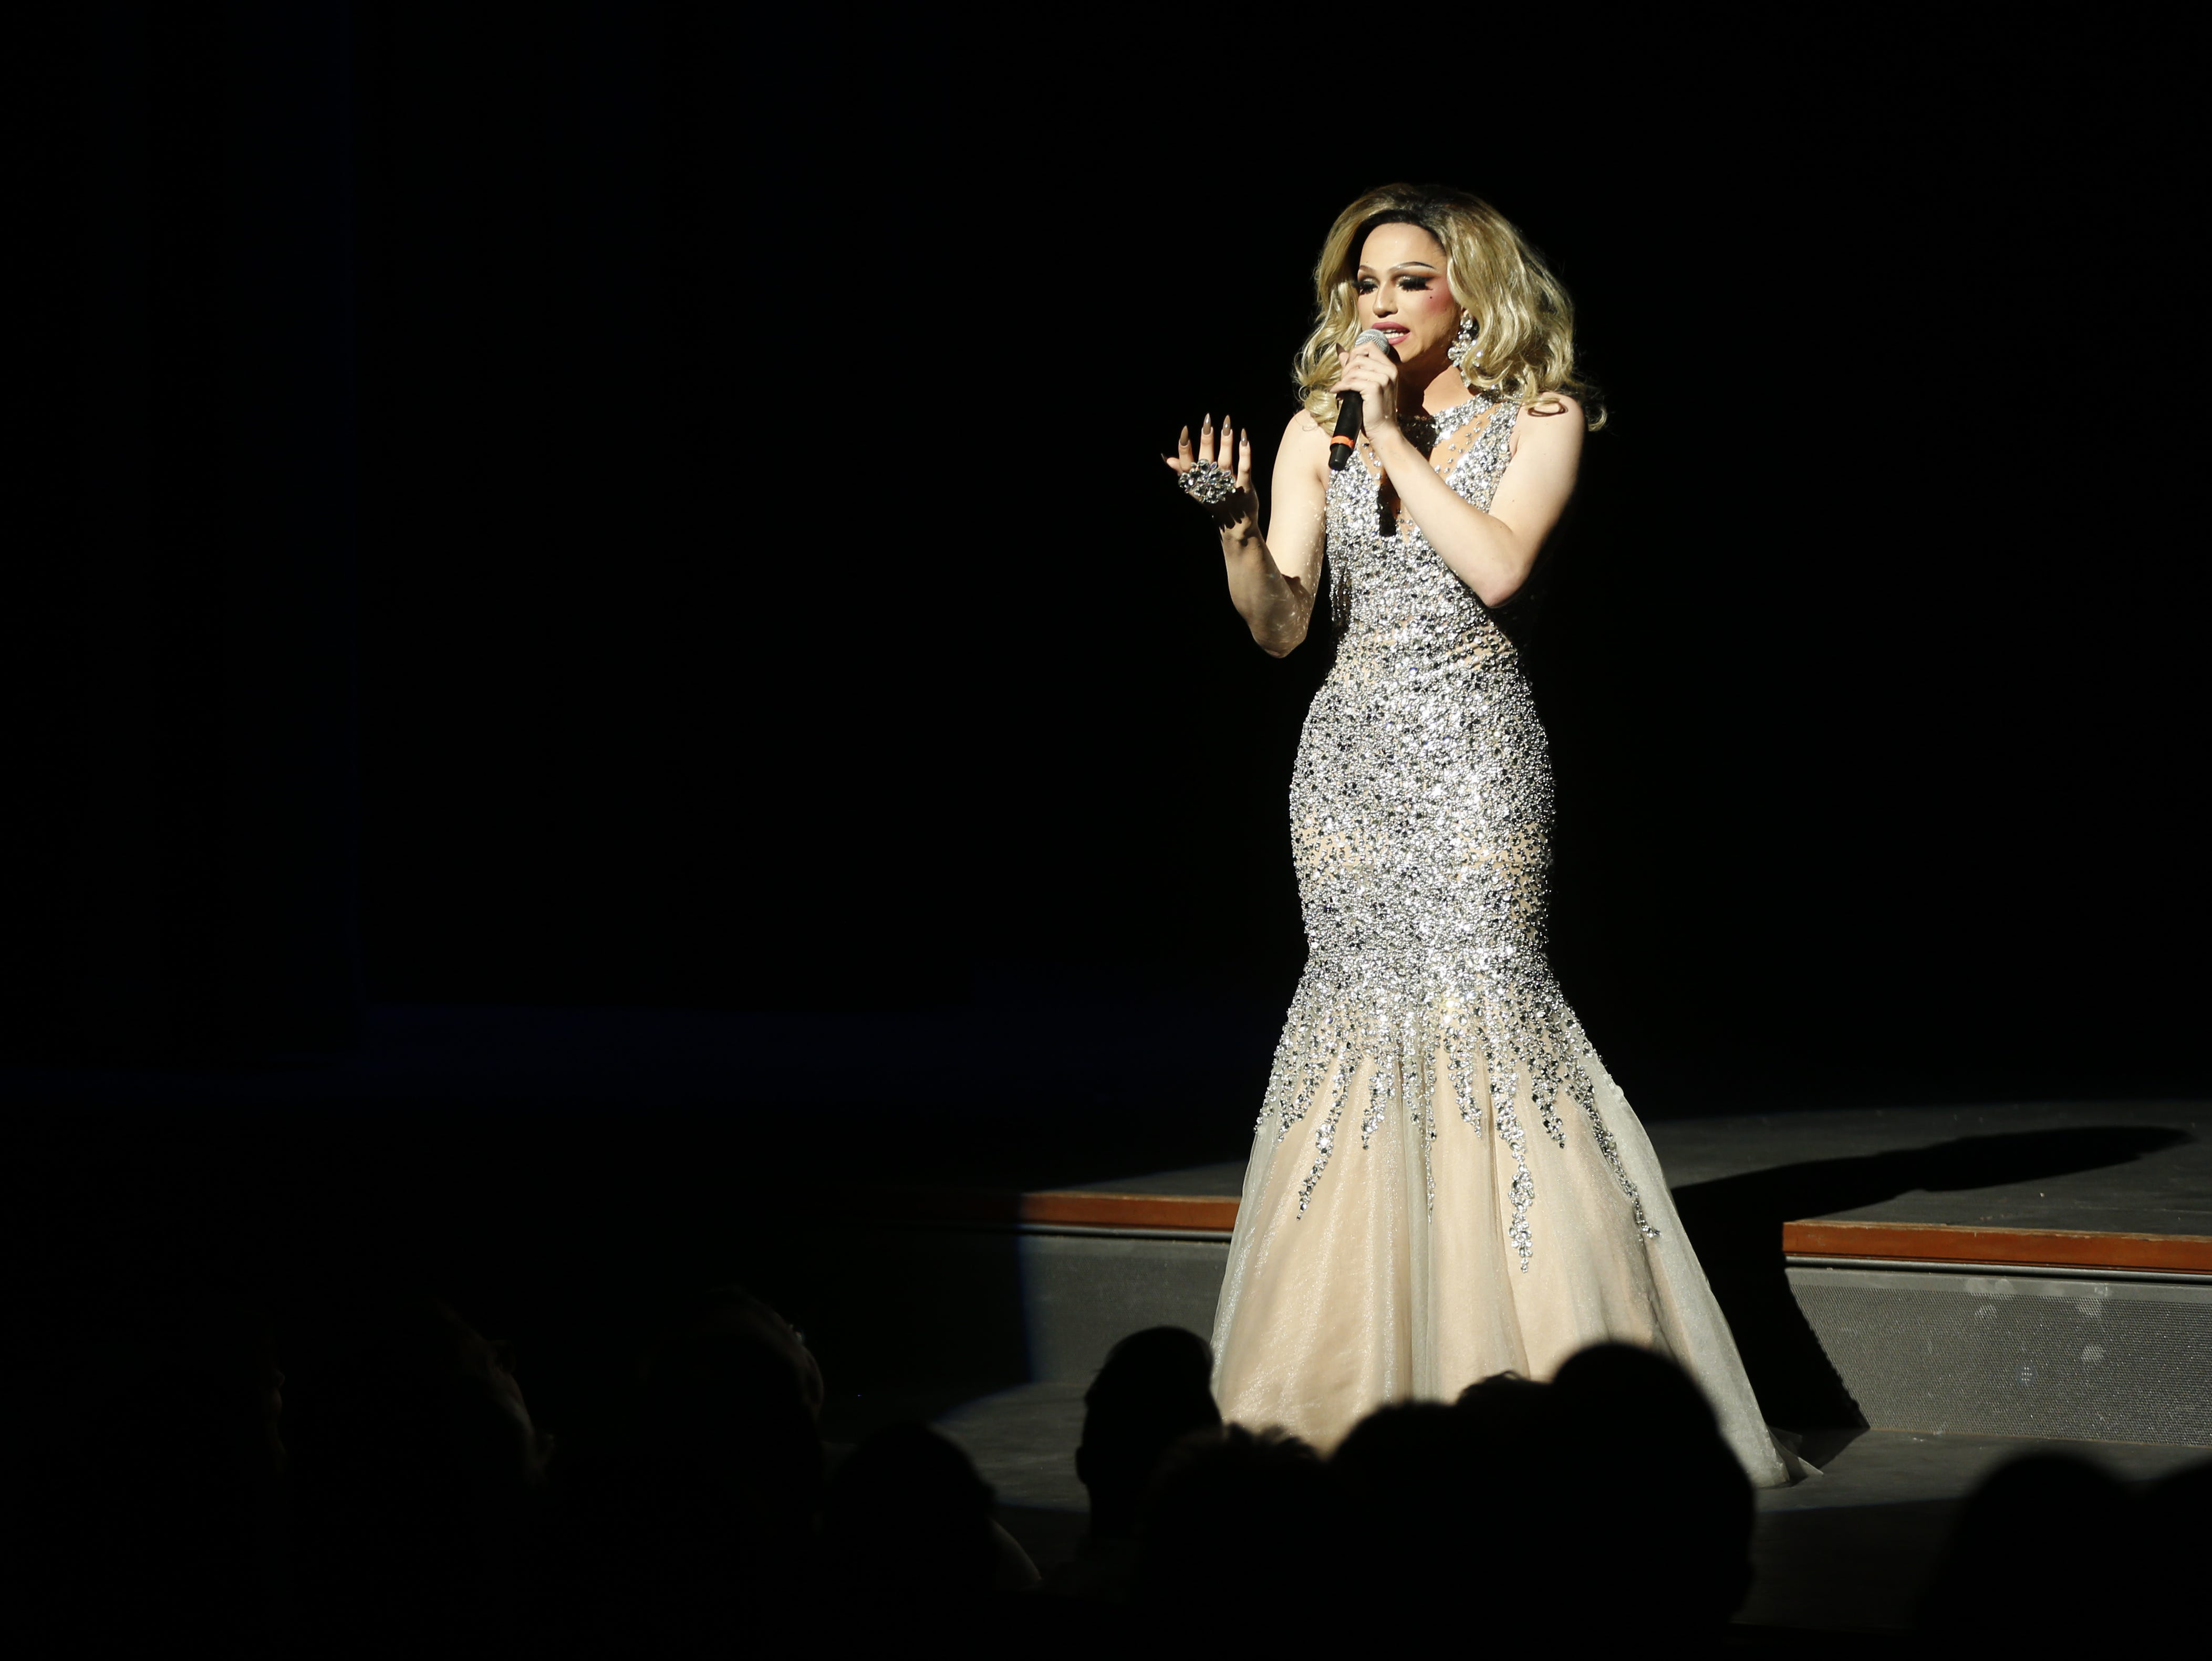 Miss Gay Tucson America Venus Moon Starr performs during the Miss Gay Arizona America pageant 2019 at Tempe Center for the Arts on May 11, 2019.